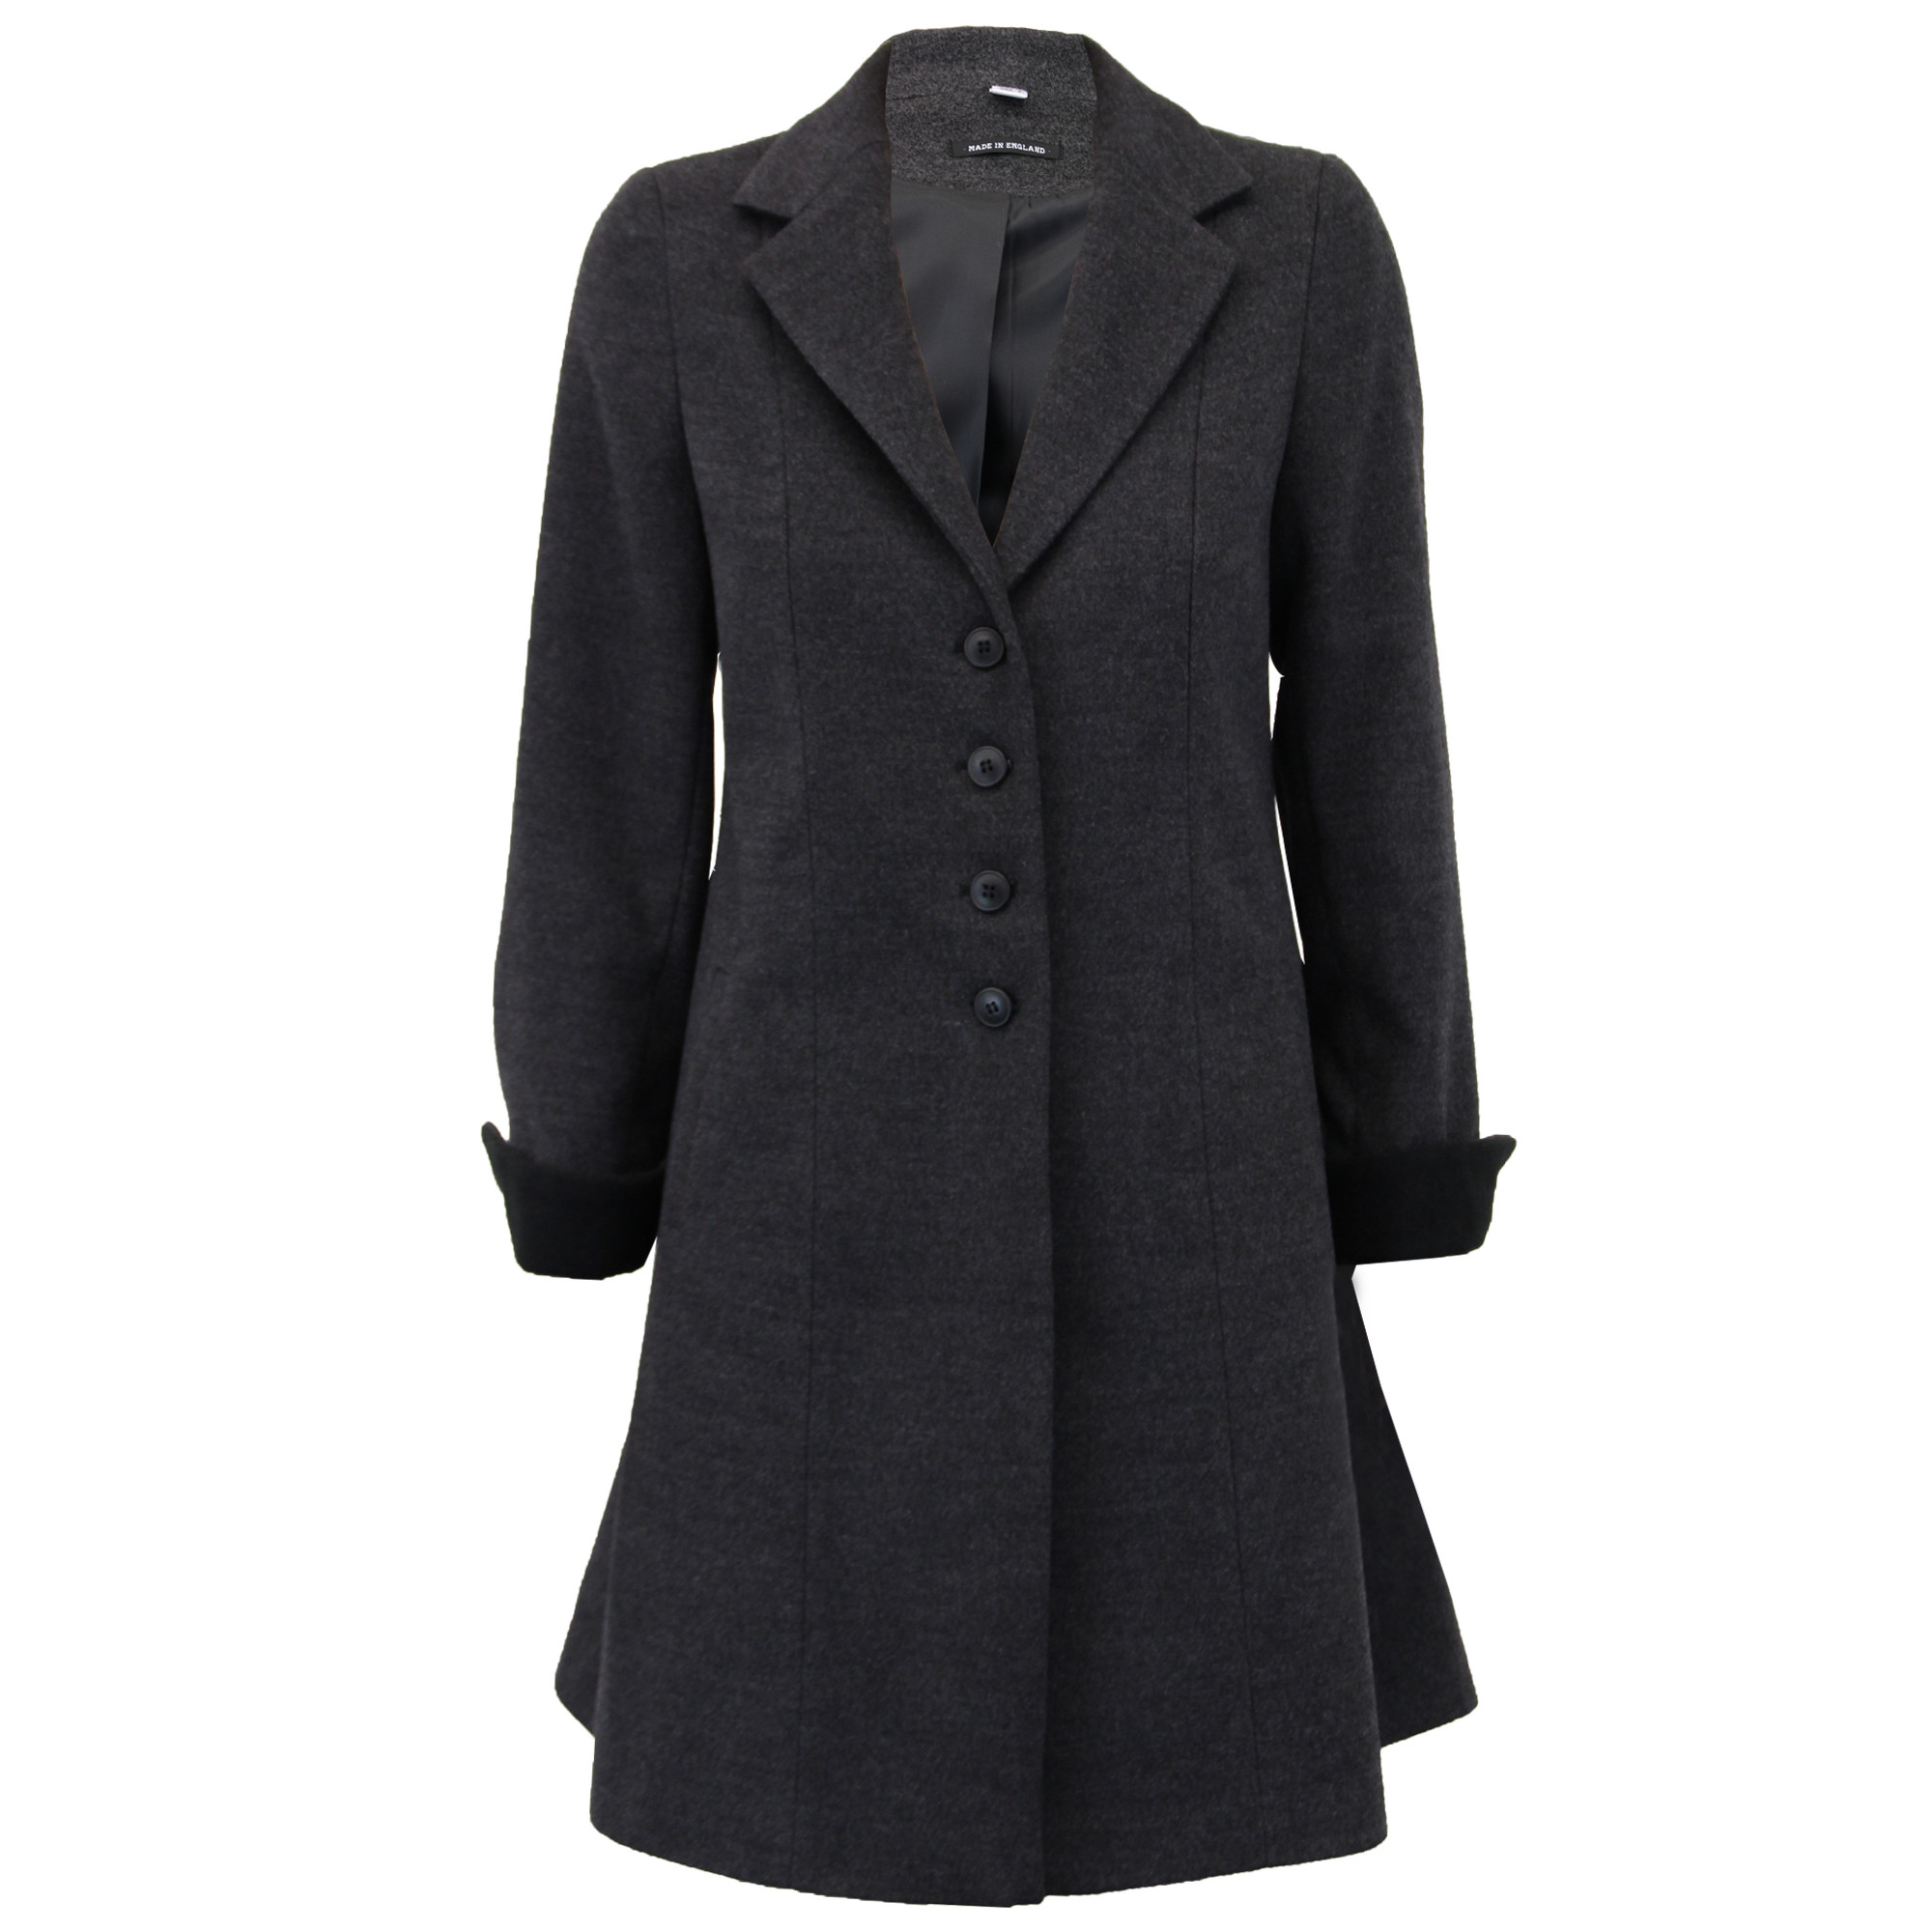 Wool for Sale Elegant La S Coat Womens Jacket Wool Look Military Long button Of Amazing 50 Models Wool for Sale